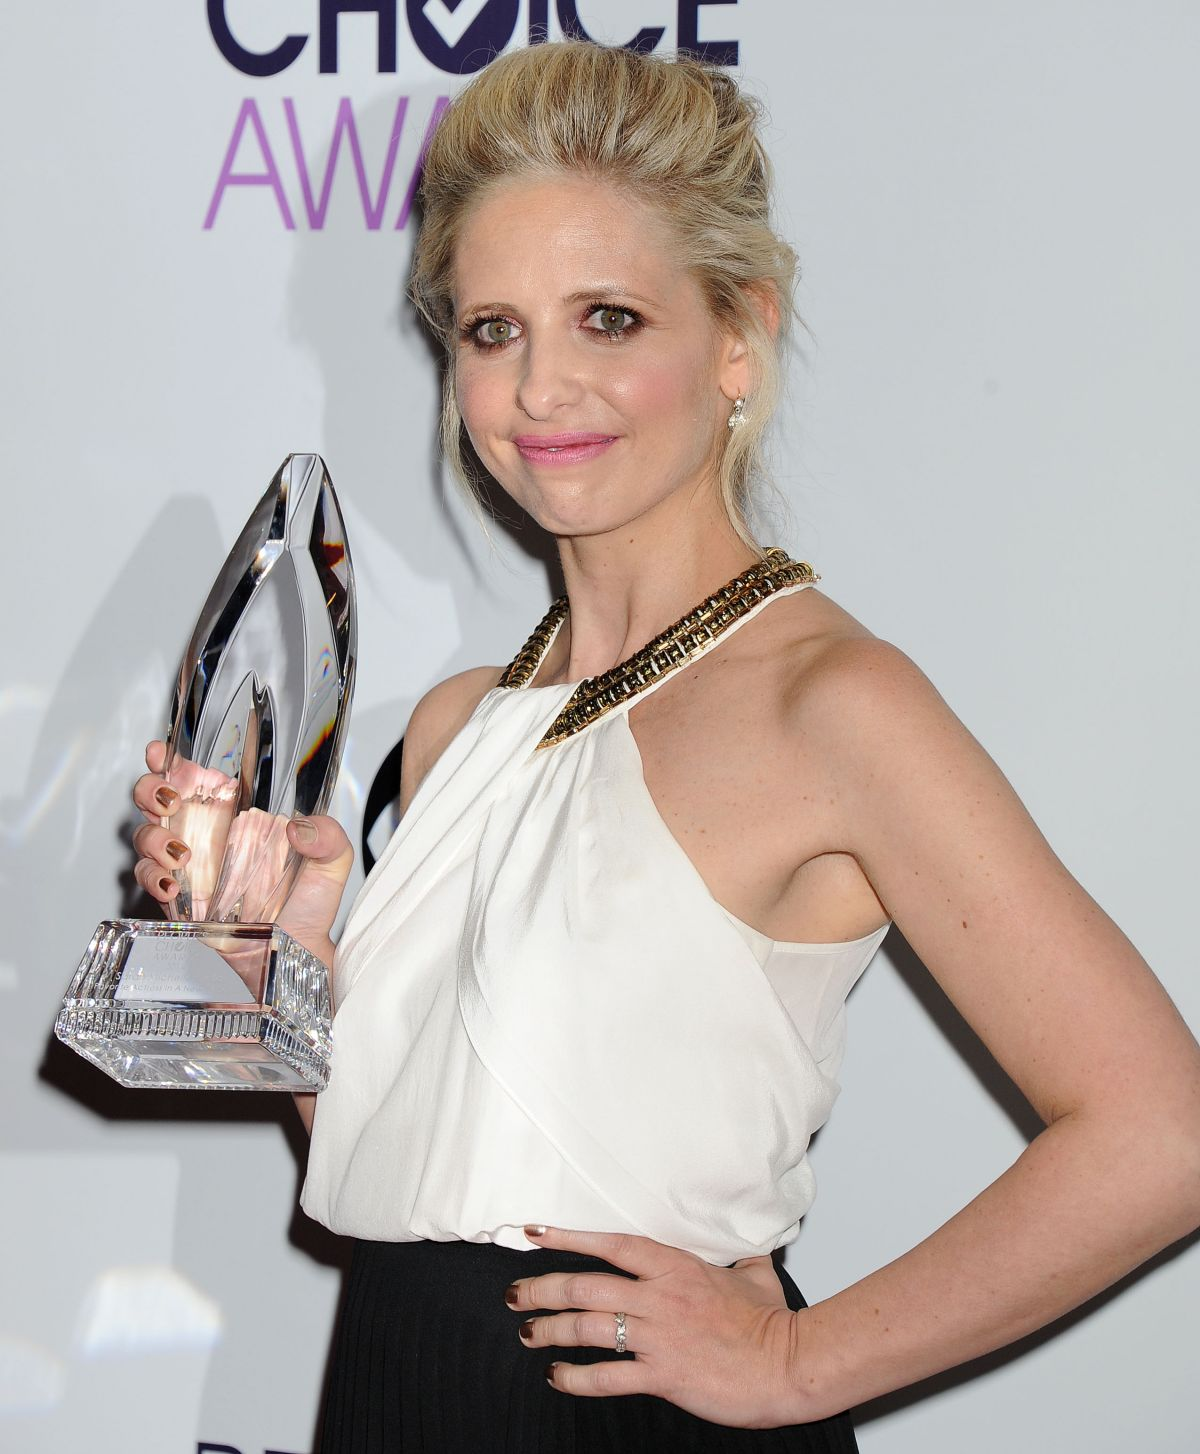 SARAH MICHELLE GELLAR at 40th Annual People's Choice Awards in Los Angeles 1